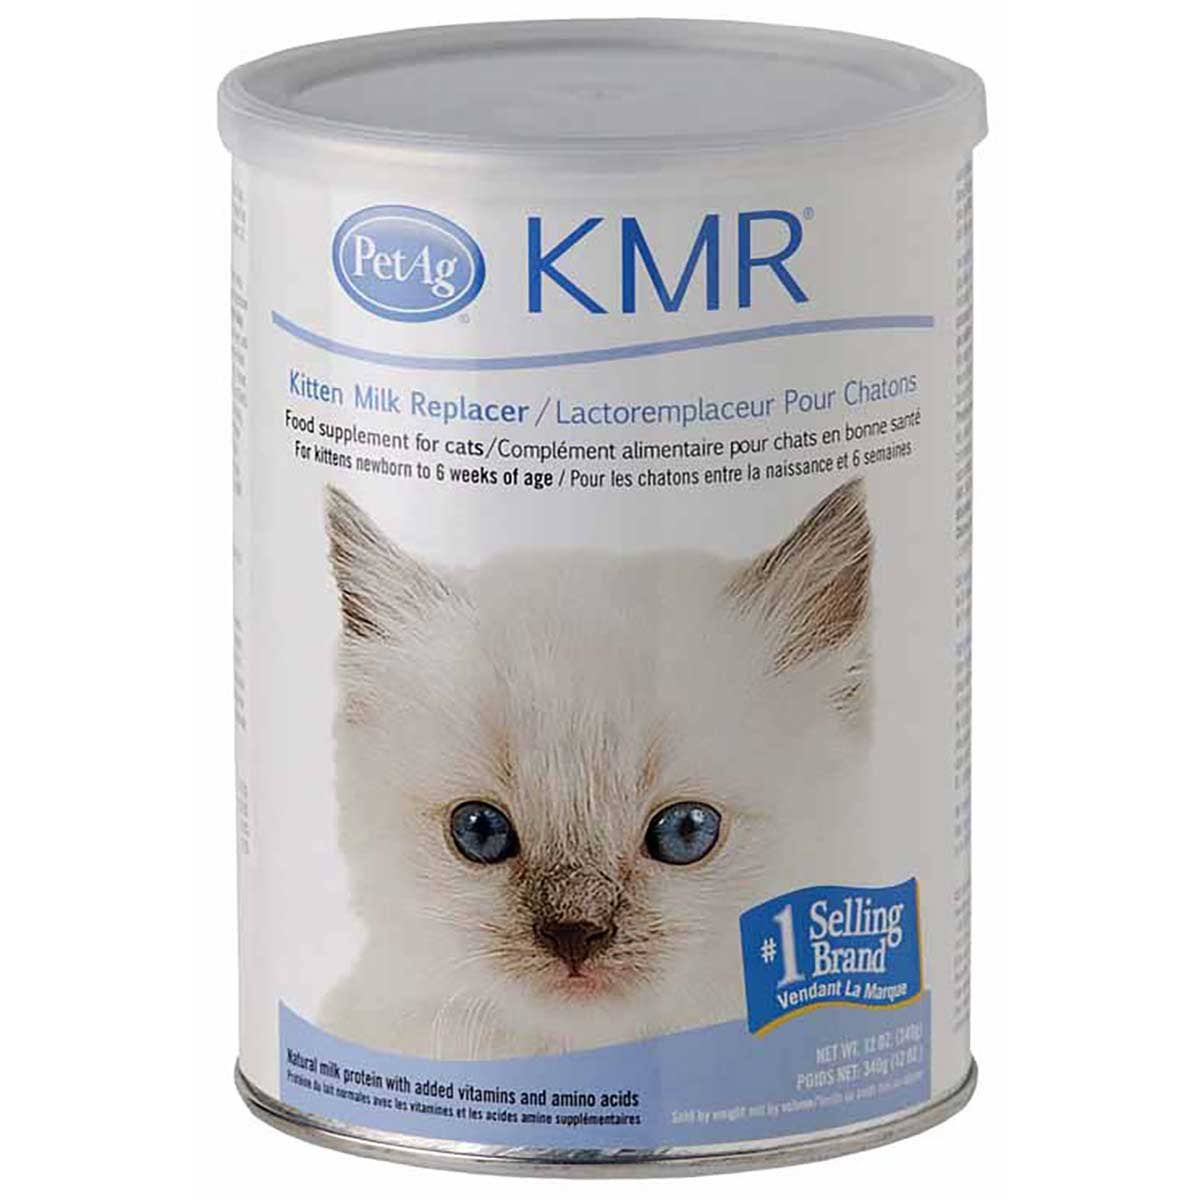 Kmr Milk Replacer For Kittens - 340g